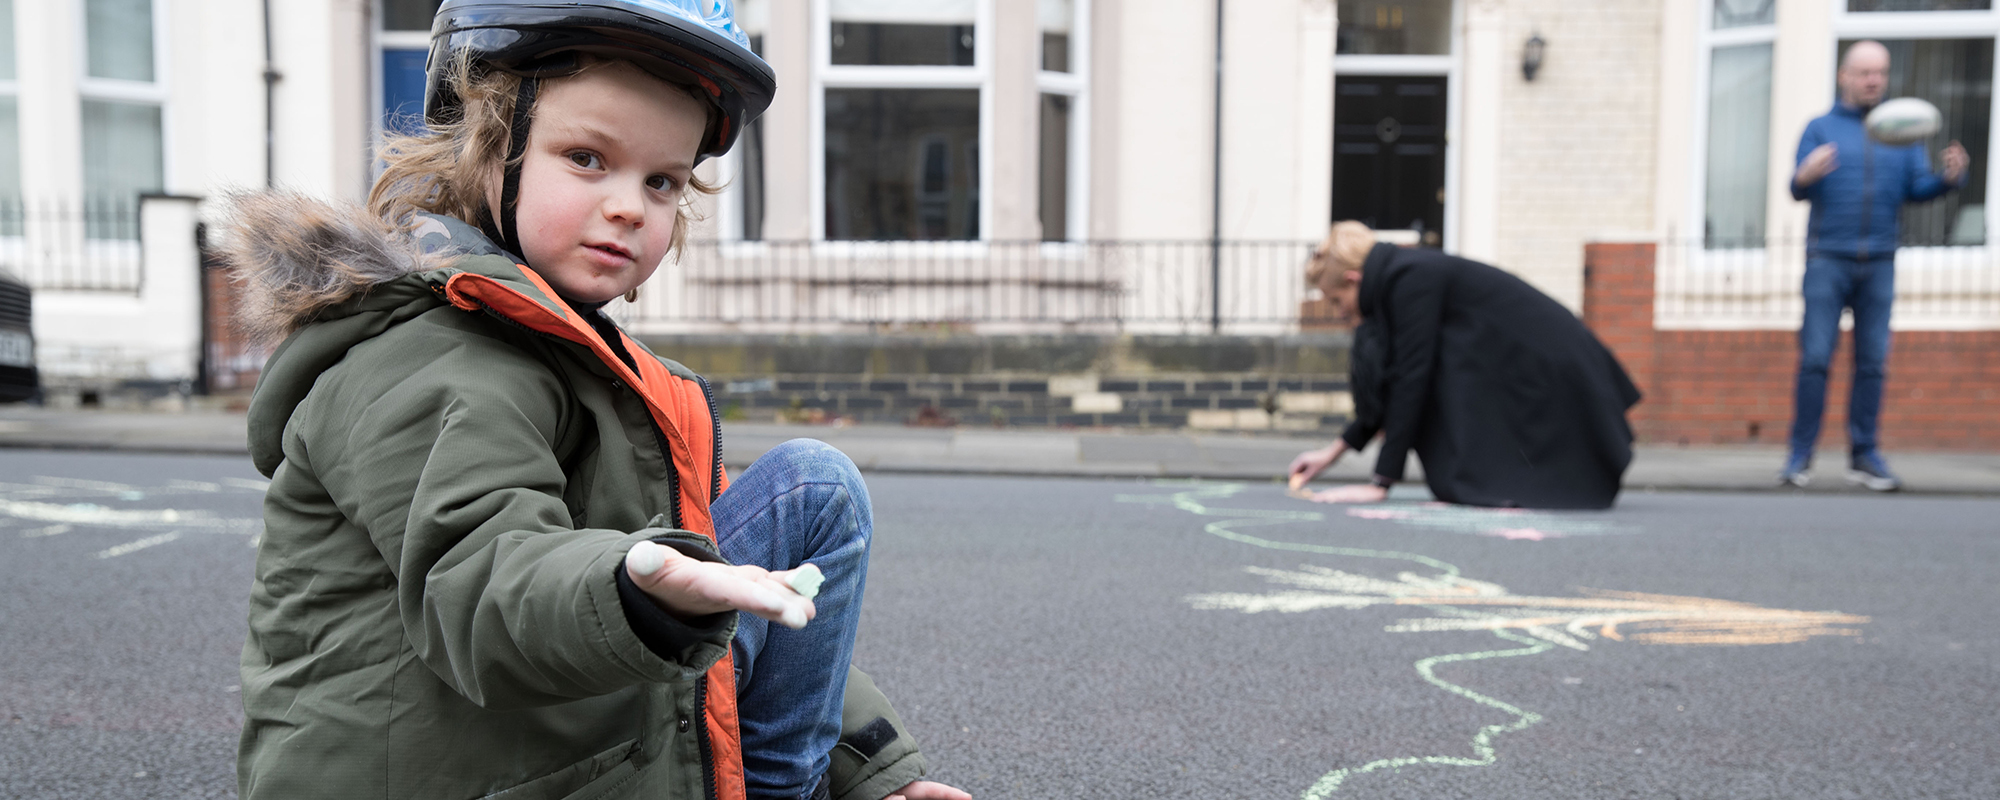 Play streets have been growing in popularity across Britain